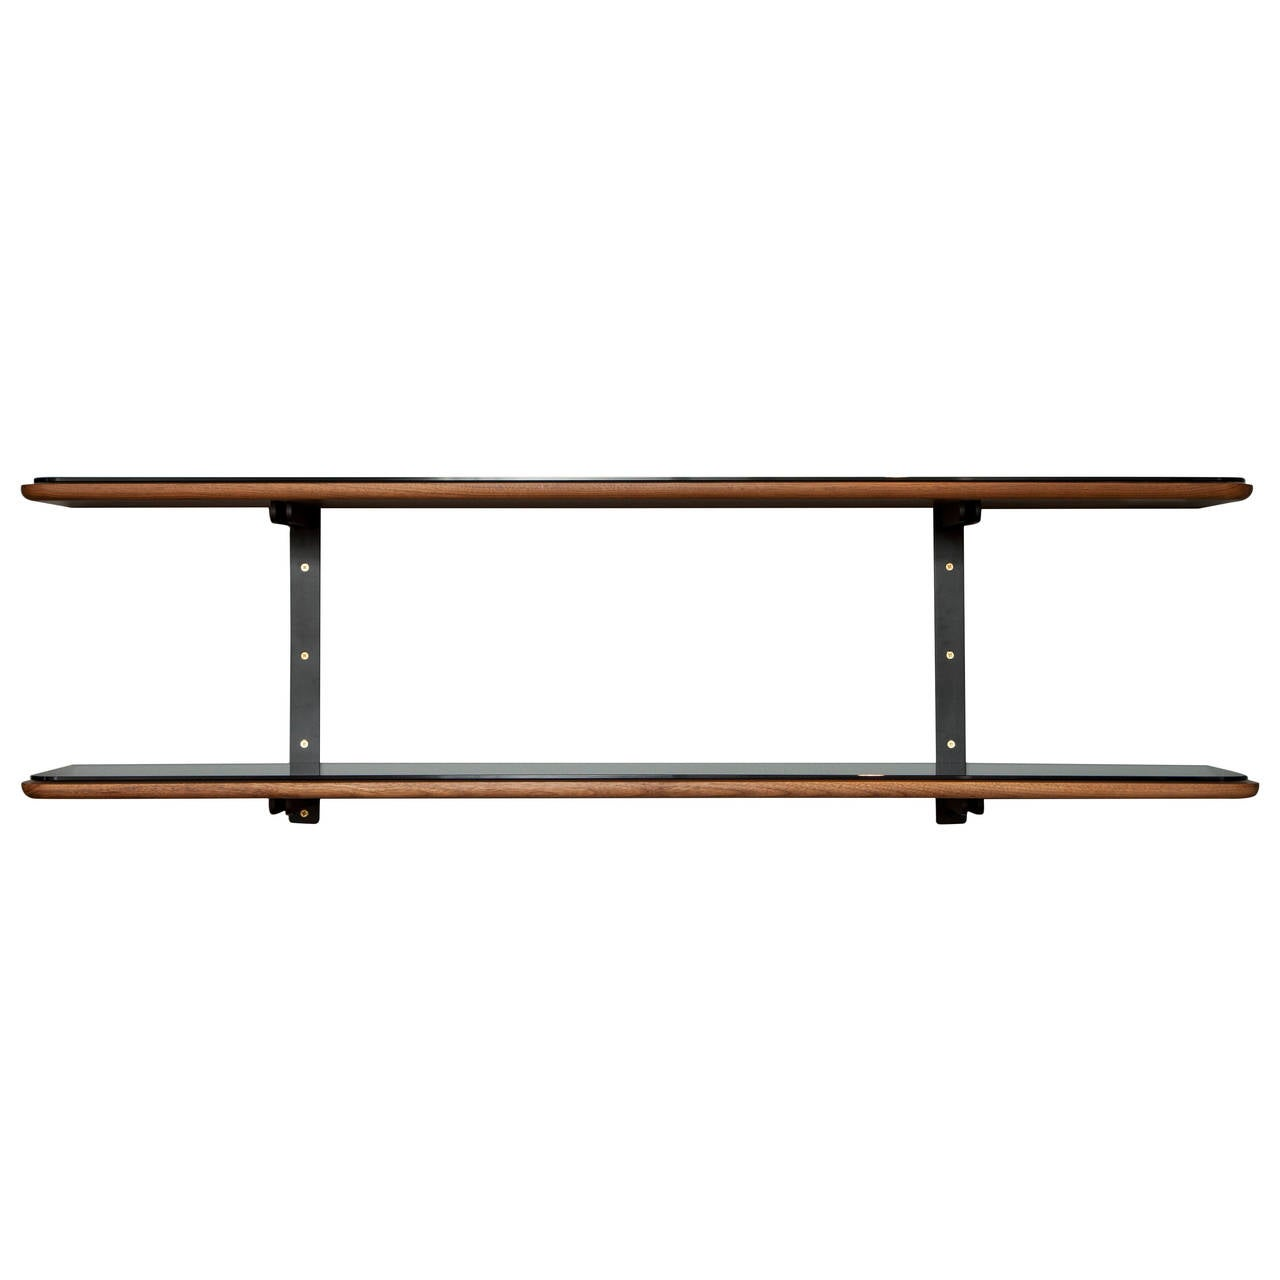 Stillmade Black Walnut and Steel Wall Shelf System